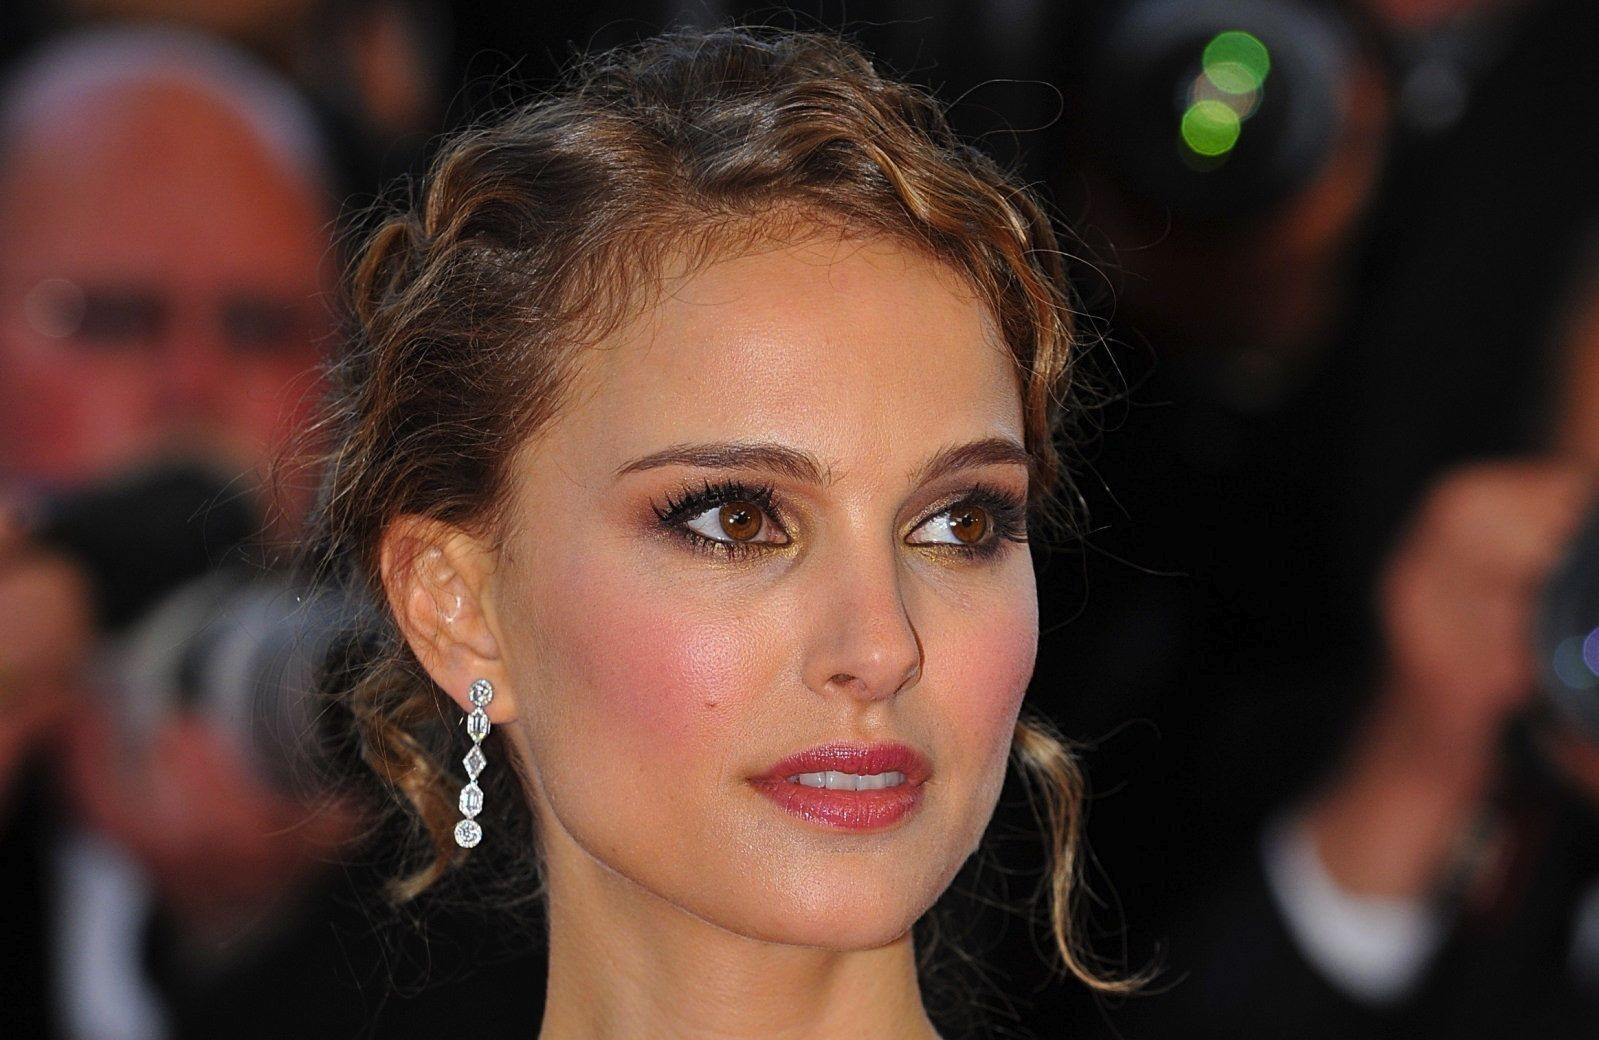 Natalie Portman was born in Jerusalem with the name Natalie Hershlag.